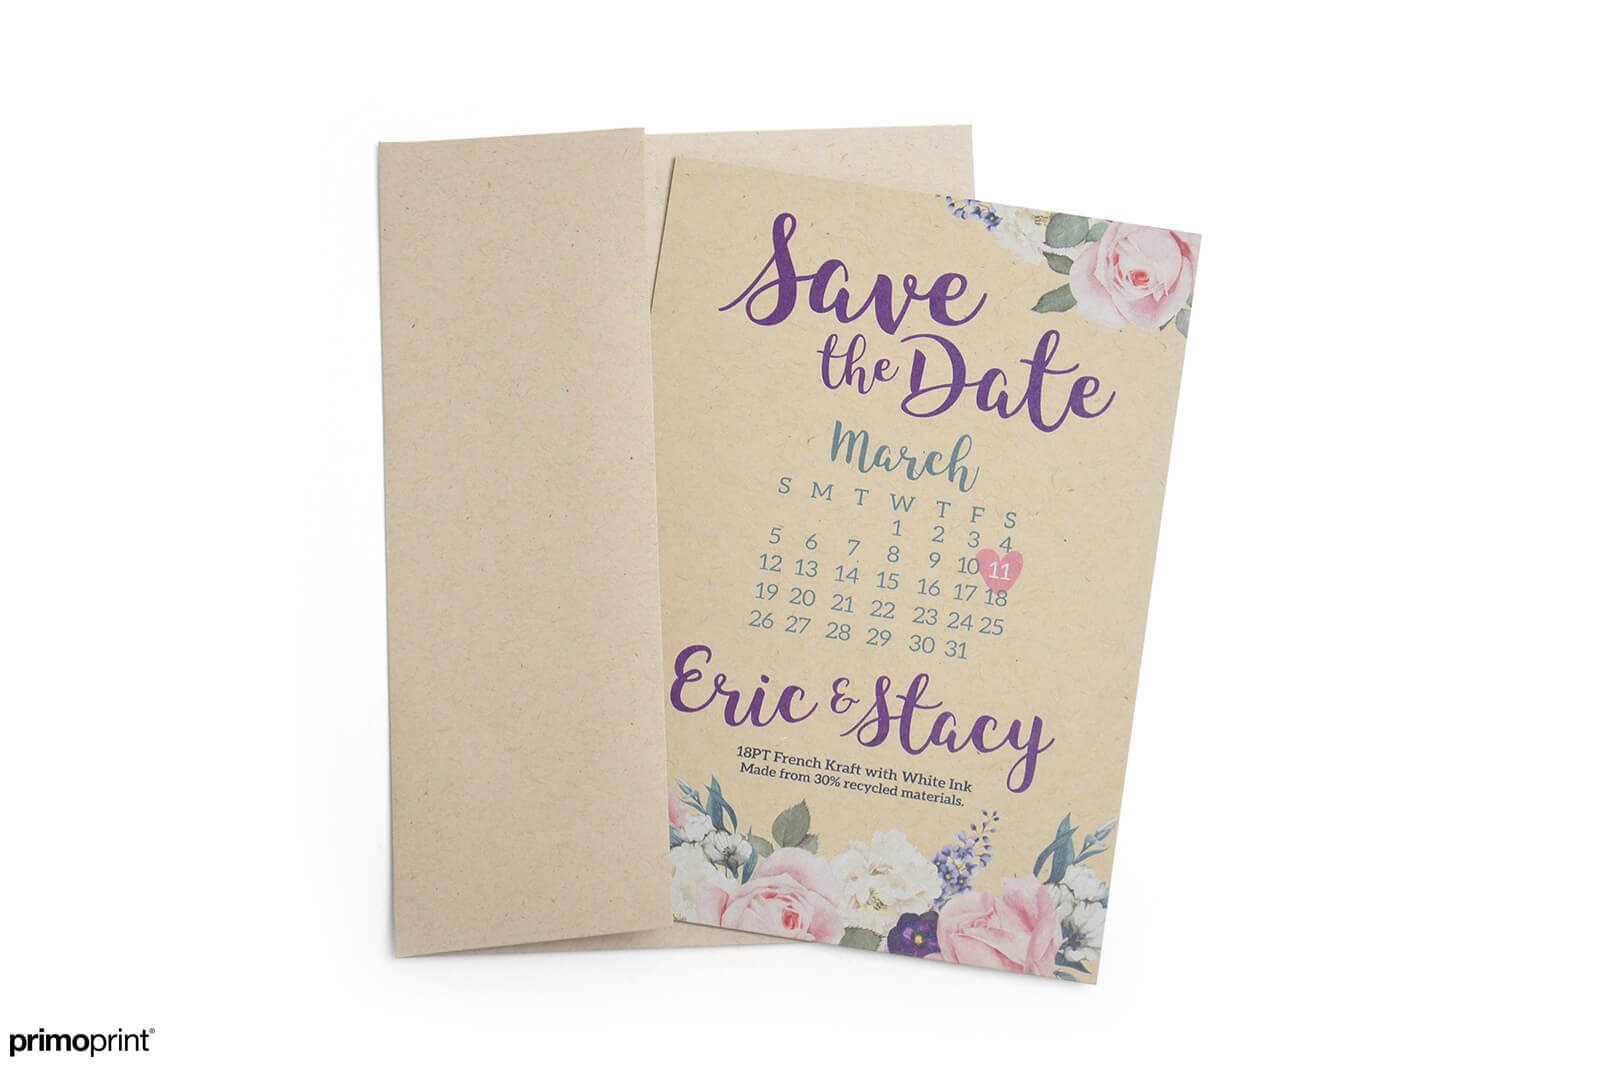 Print your invitations and announcements on Kraft paper stock. It's an elegant and trendy paper stock perfect for any occasion.